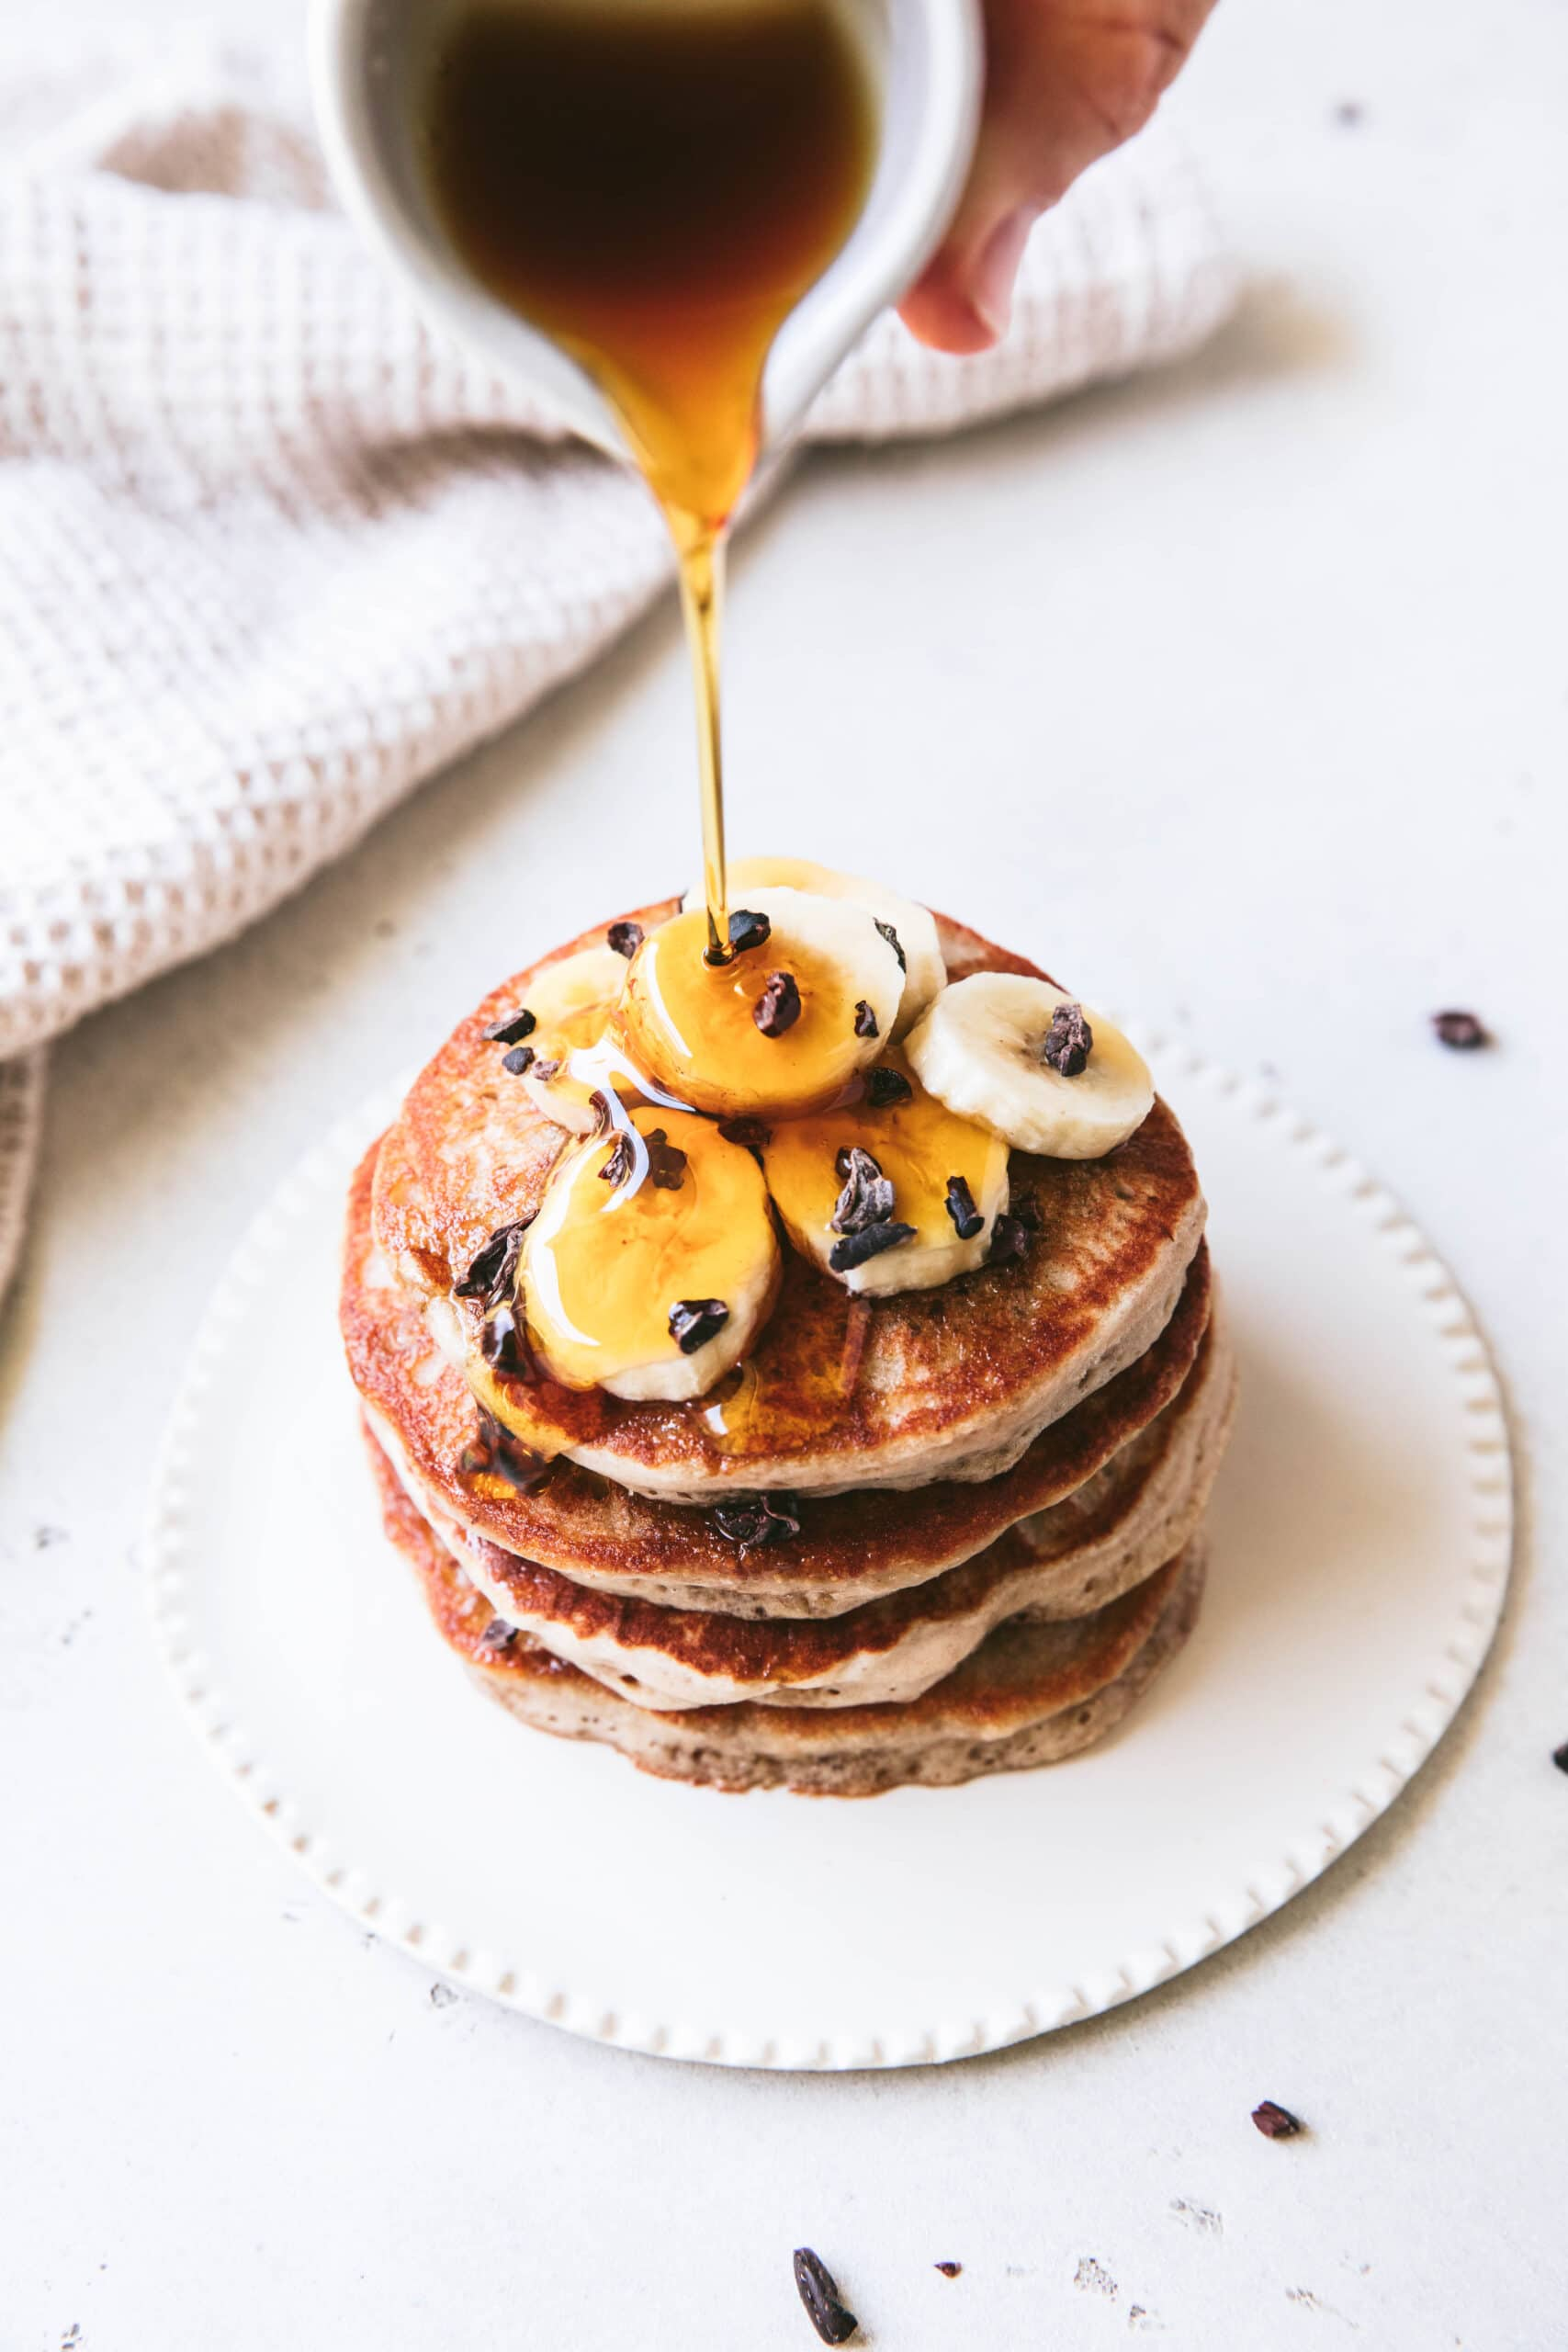 maple syrup poured over top of buckwheat pancake stack